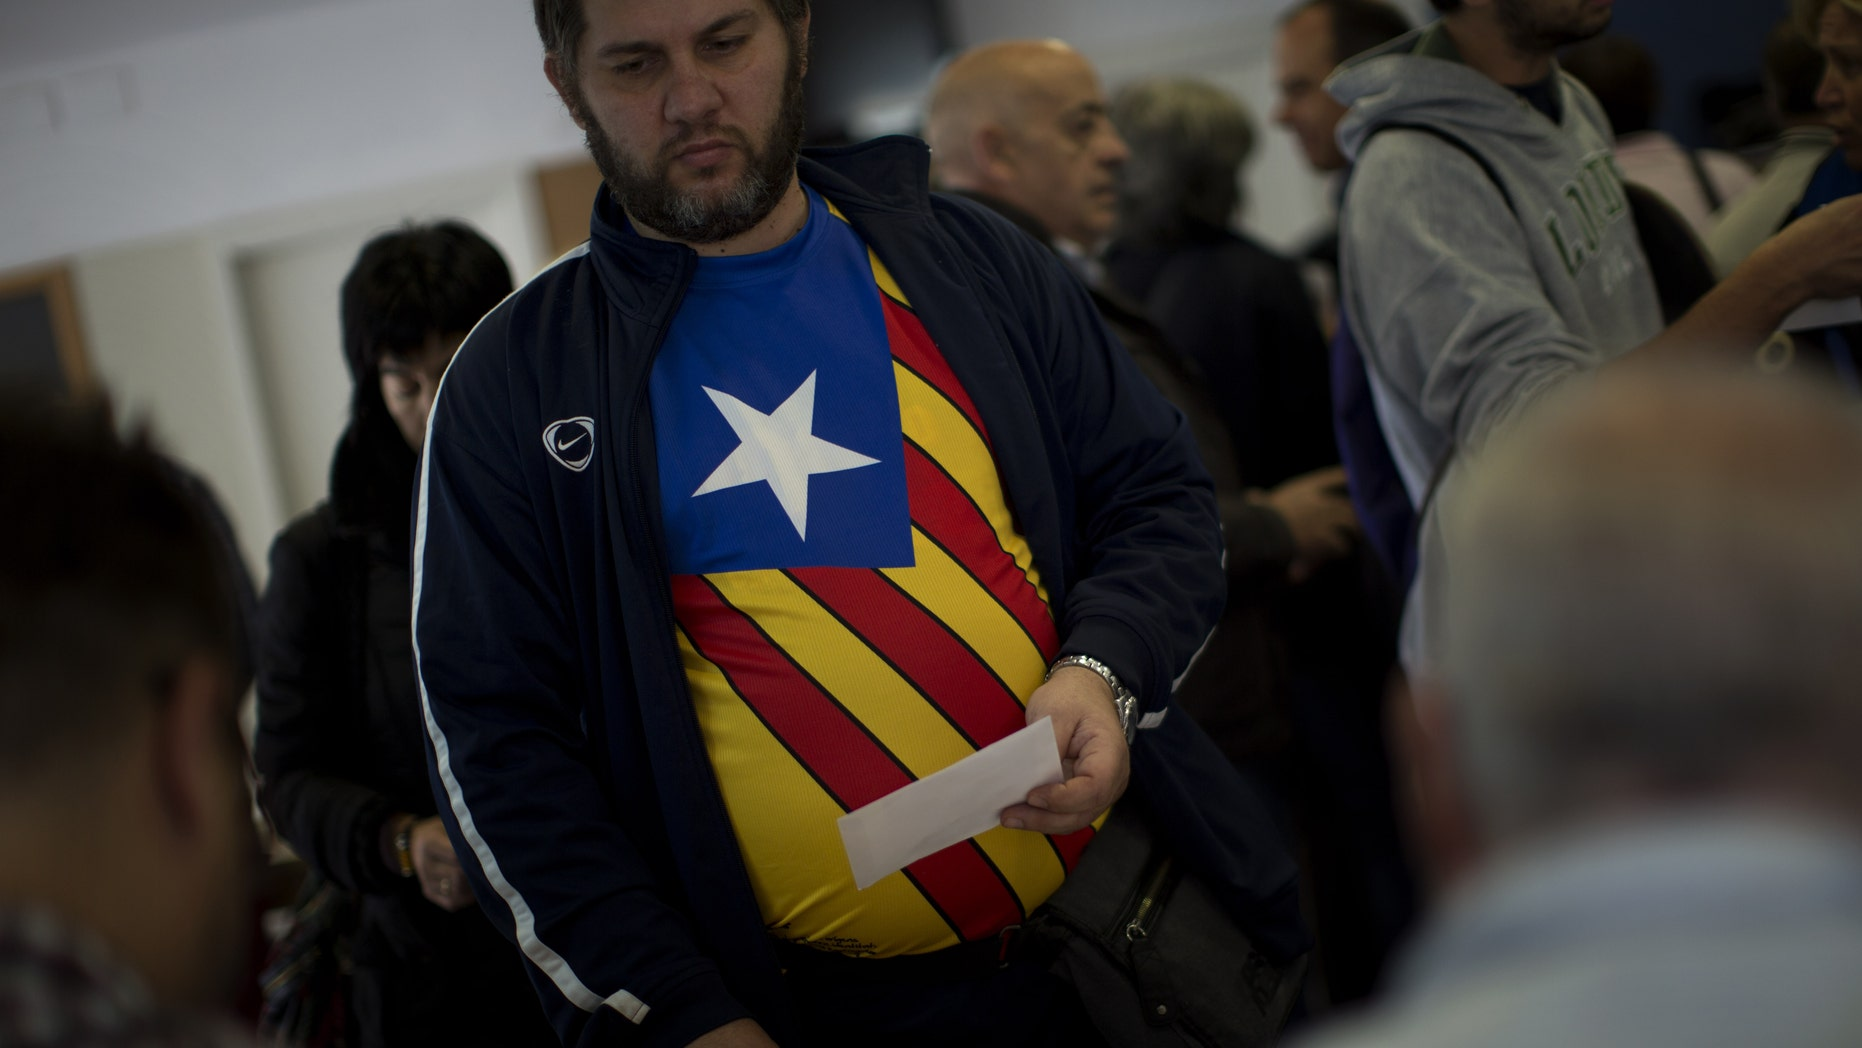 Carlas Albert, 45, waits to cast his vote for an informal independence poll in a polling station in Barcelona, Spain, on Sunday Nov.9, 2014. The pro-independence regional government of Catalonia stages a symbolic poll on secession in a show of determination and defiance after the Constitutional Court suspended its plans to hold an official independence referendum following a legal challenge by the Spanish government. (AP Photo/Emilio Morenatti)